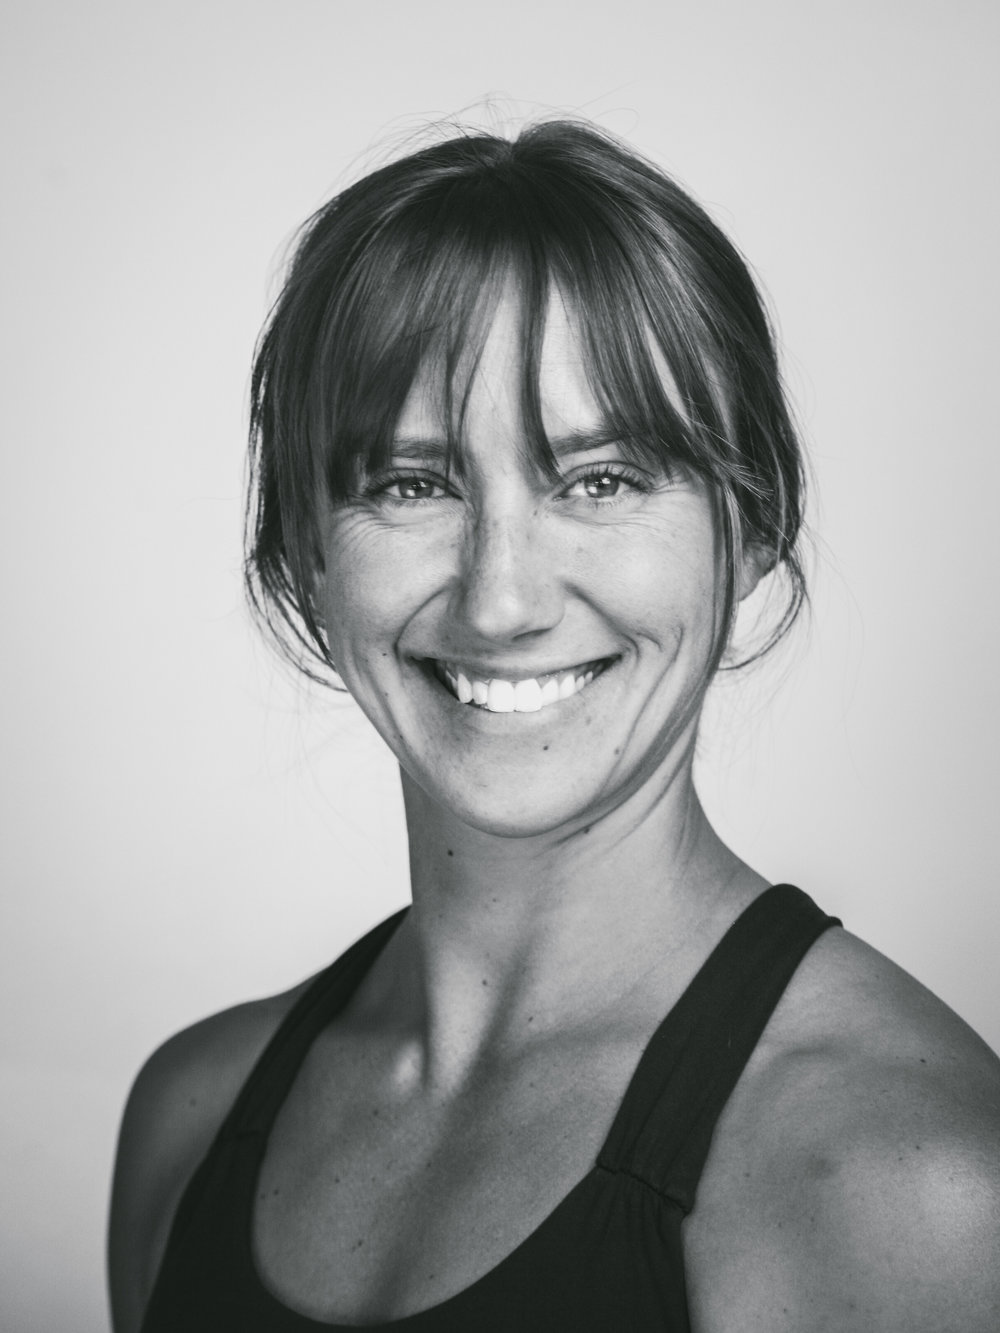 Emily Ellis - I teach: Yoga, Seek Sweat,& TRXI love to challenge my students... with a smile. I love when students leave the room amazed at what their bodies can do. I plan each class carefully so that you're always experiencing something different! Come to class with an open mind and an open heart.Words I live by:We all have so much potential! We just have to be willing to discover it...Beats I move to:Obviously I love Bruno Mars and Beyonce... but my classes are usually set to some soulful beats. Less words so that your breath enhances the soundtrack!What I live for: Sunshine! I'm solar powered! I love the sun and any chance I can get to be outside. I love hiking tall peaks, bike rides, good coffee, long runs, handstands, and dancing of course.